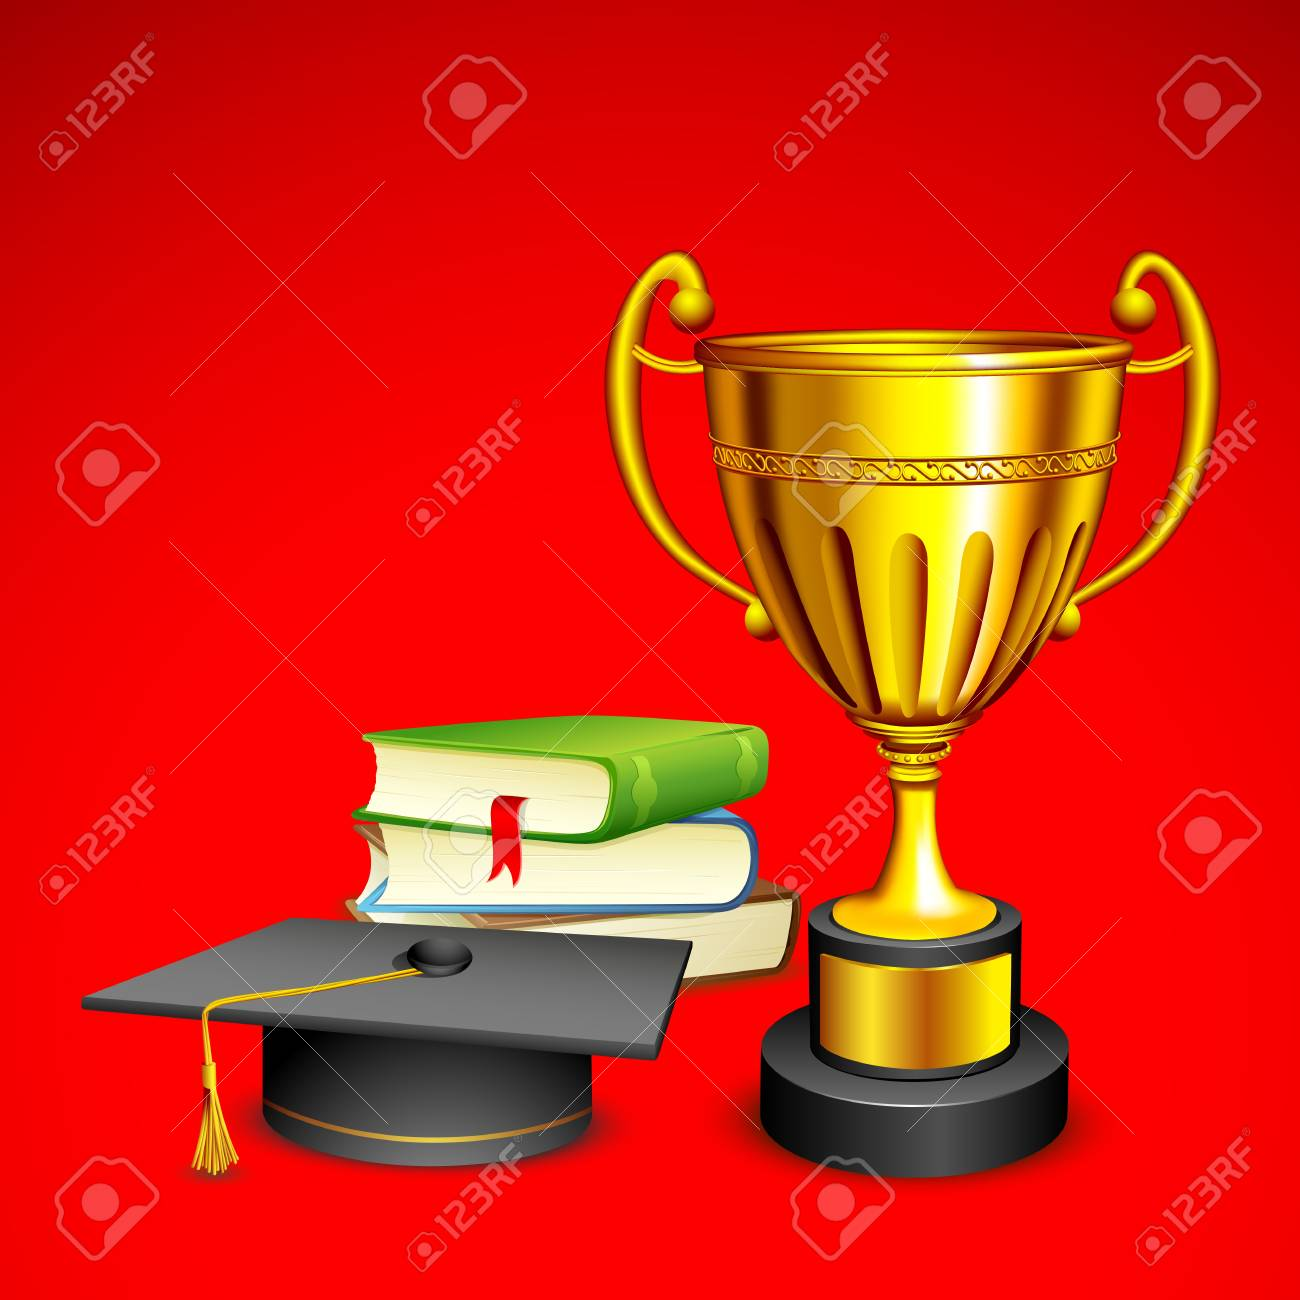 Trophy and Book Stock Photo - 14588963